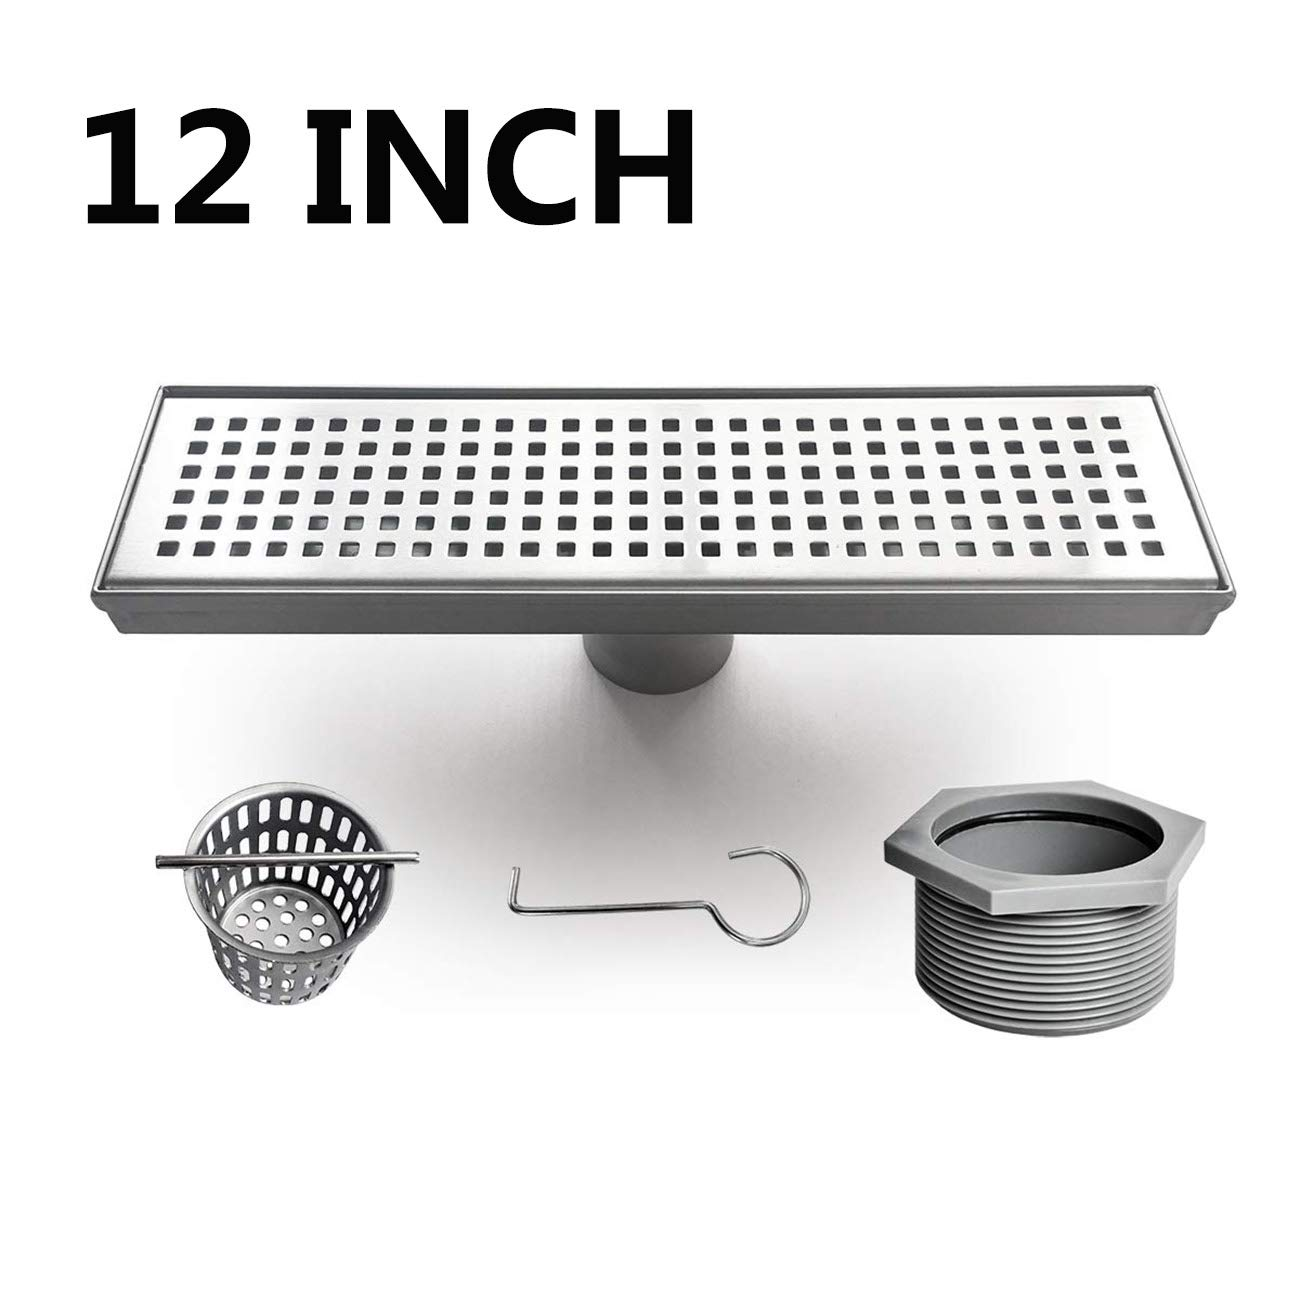 Neodrain Linear Shower Drain 12-Inch with Removable Grate, Professional Brushed 304 Stainless Steel